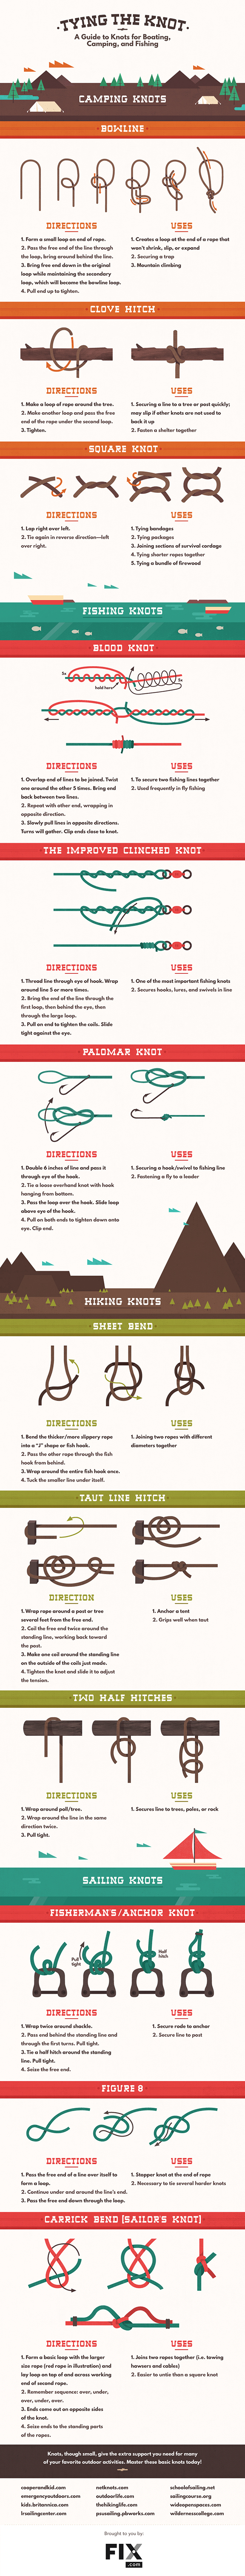 knot tying infographic